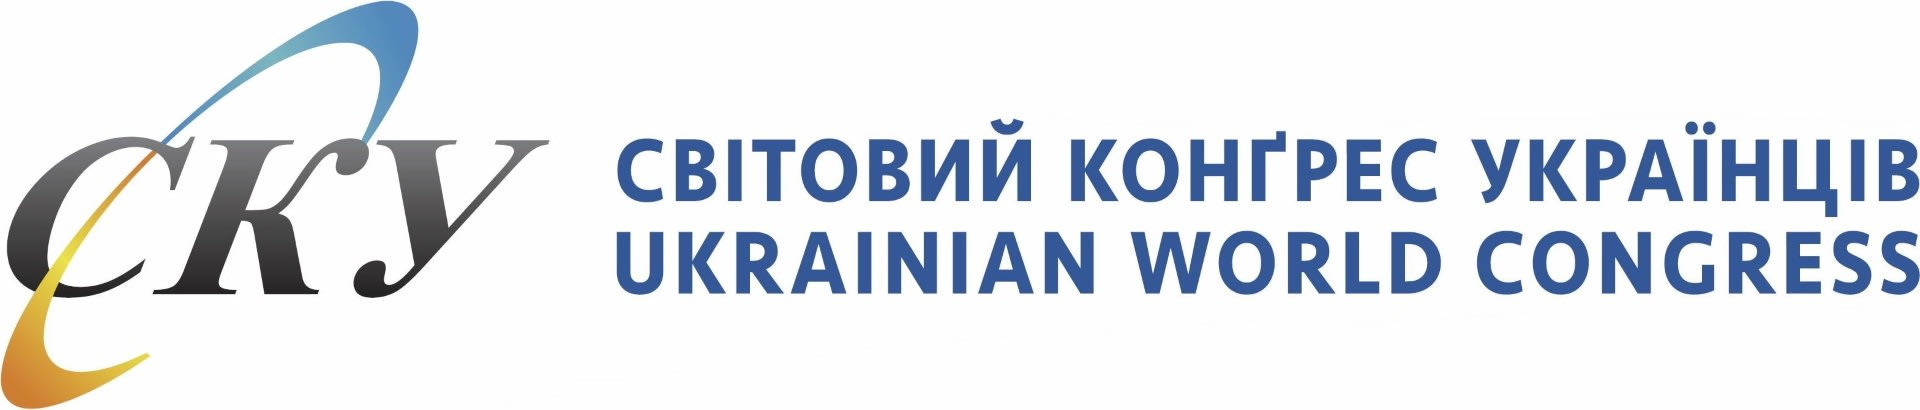 Bulletin of Ukrainian World Congress #5 – 2020